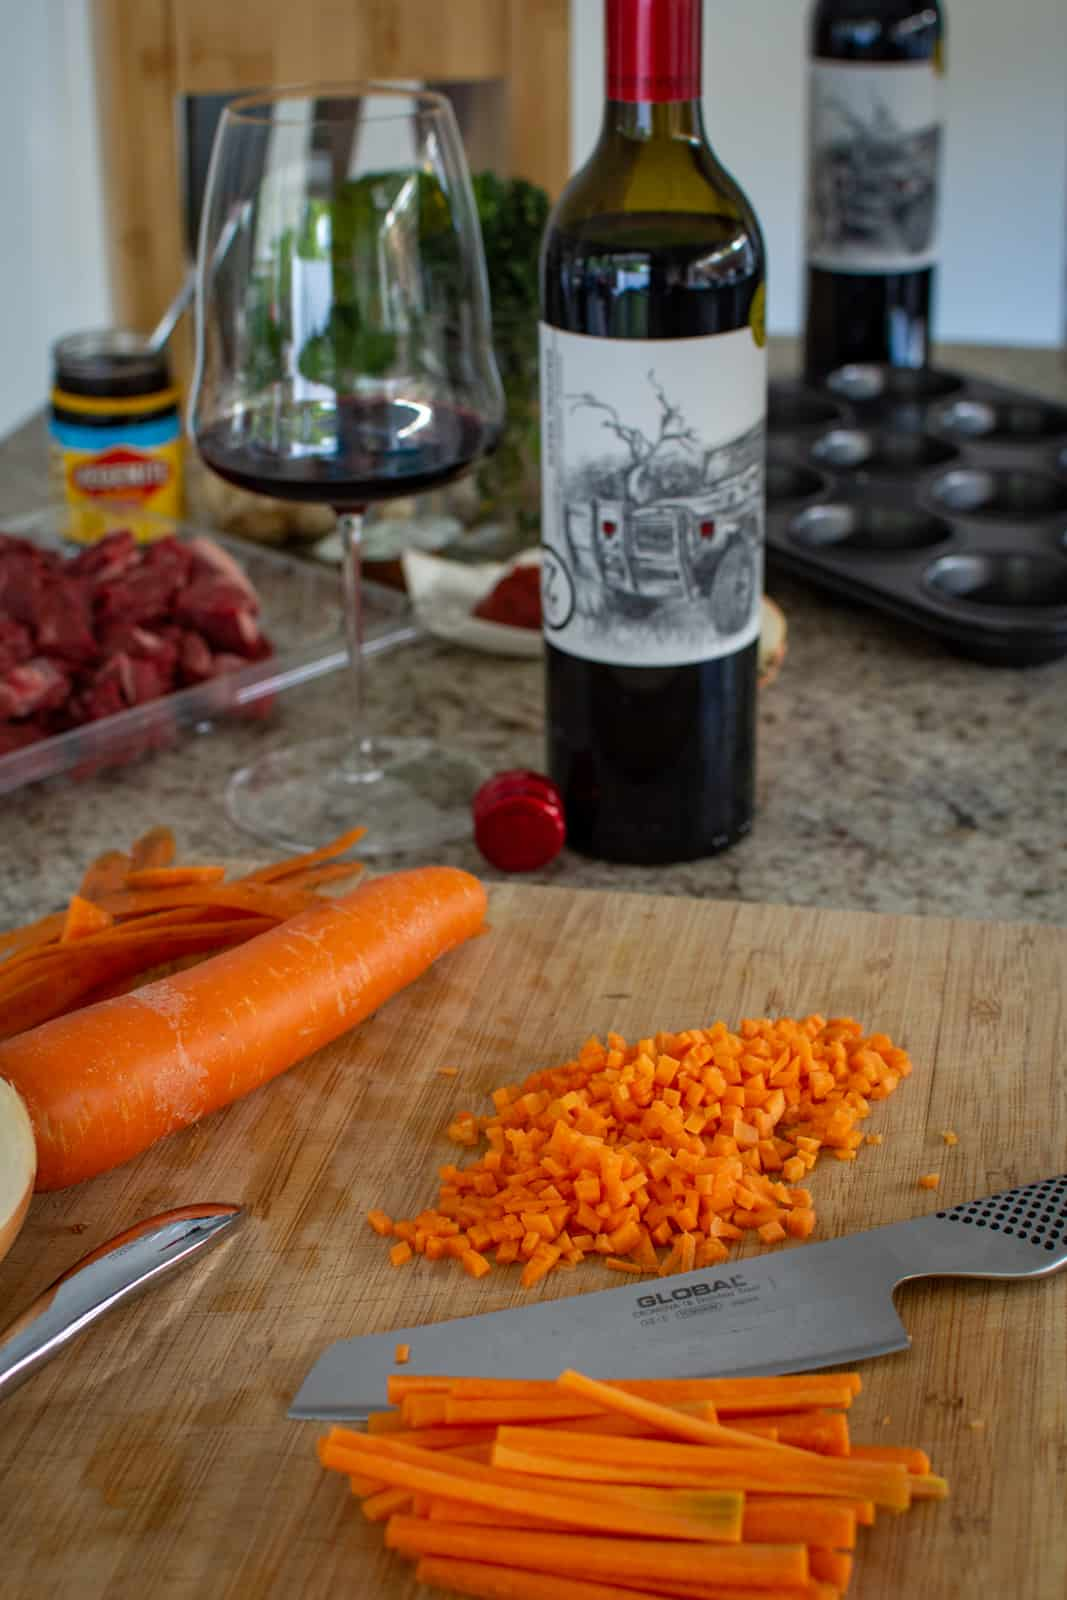 carrots being chopped on chopping board with other ingredients and wine in background